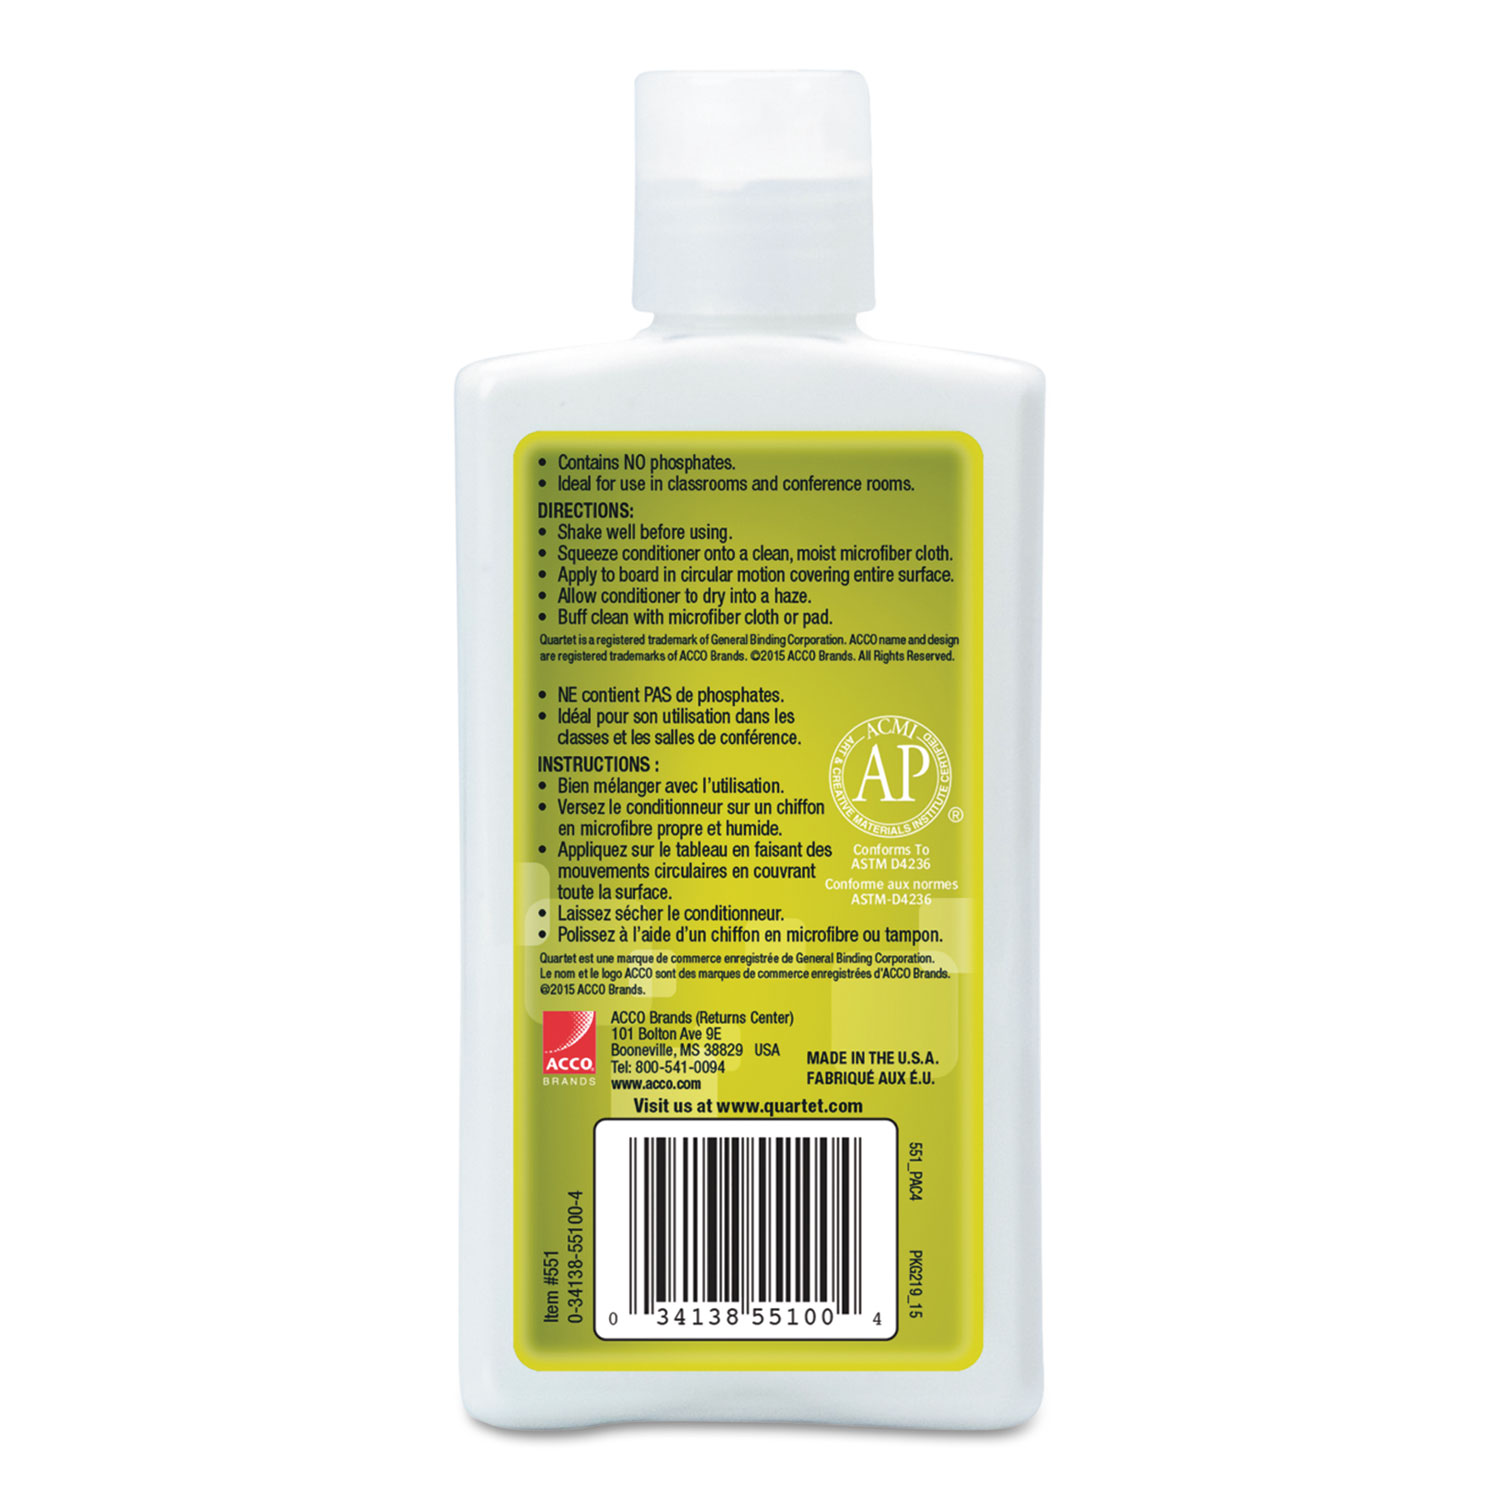 Picture of Whiteboard Conditioner/Cleaner for Dry Erase Boards, 8 oz Bottle